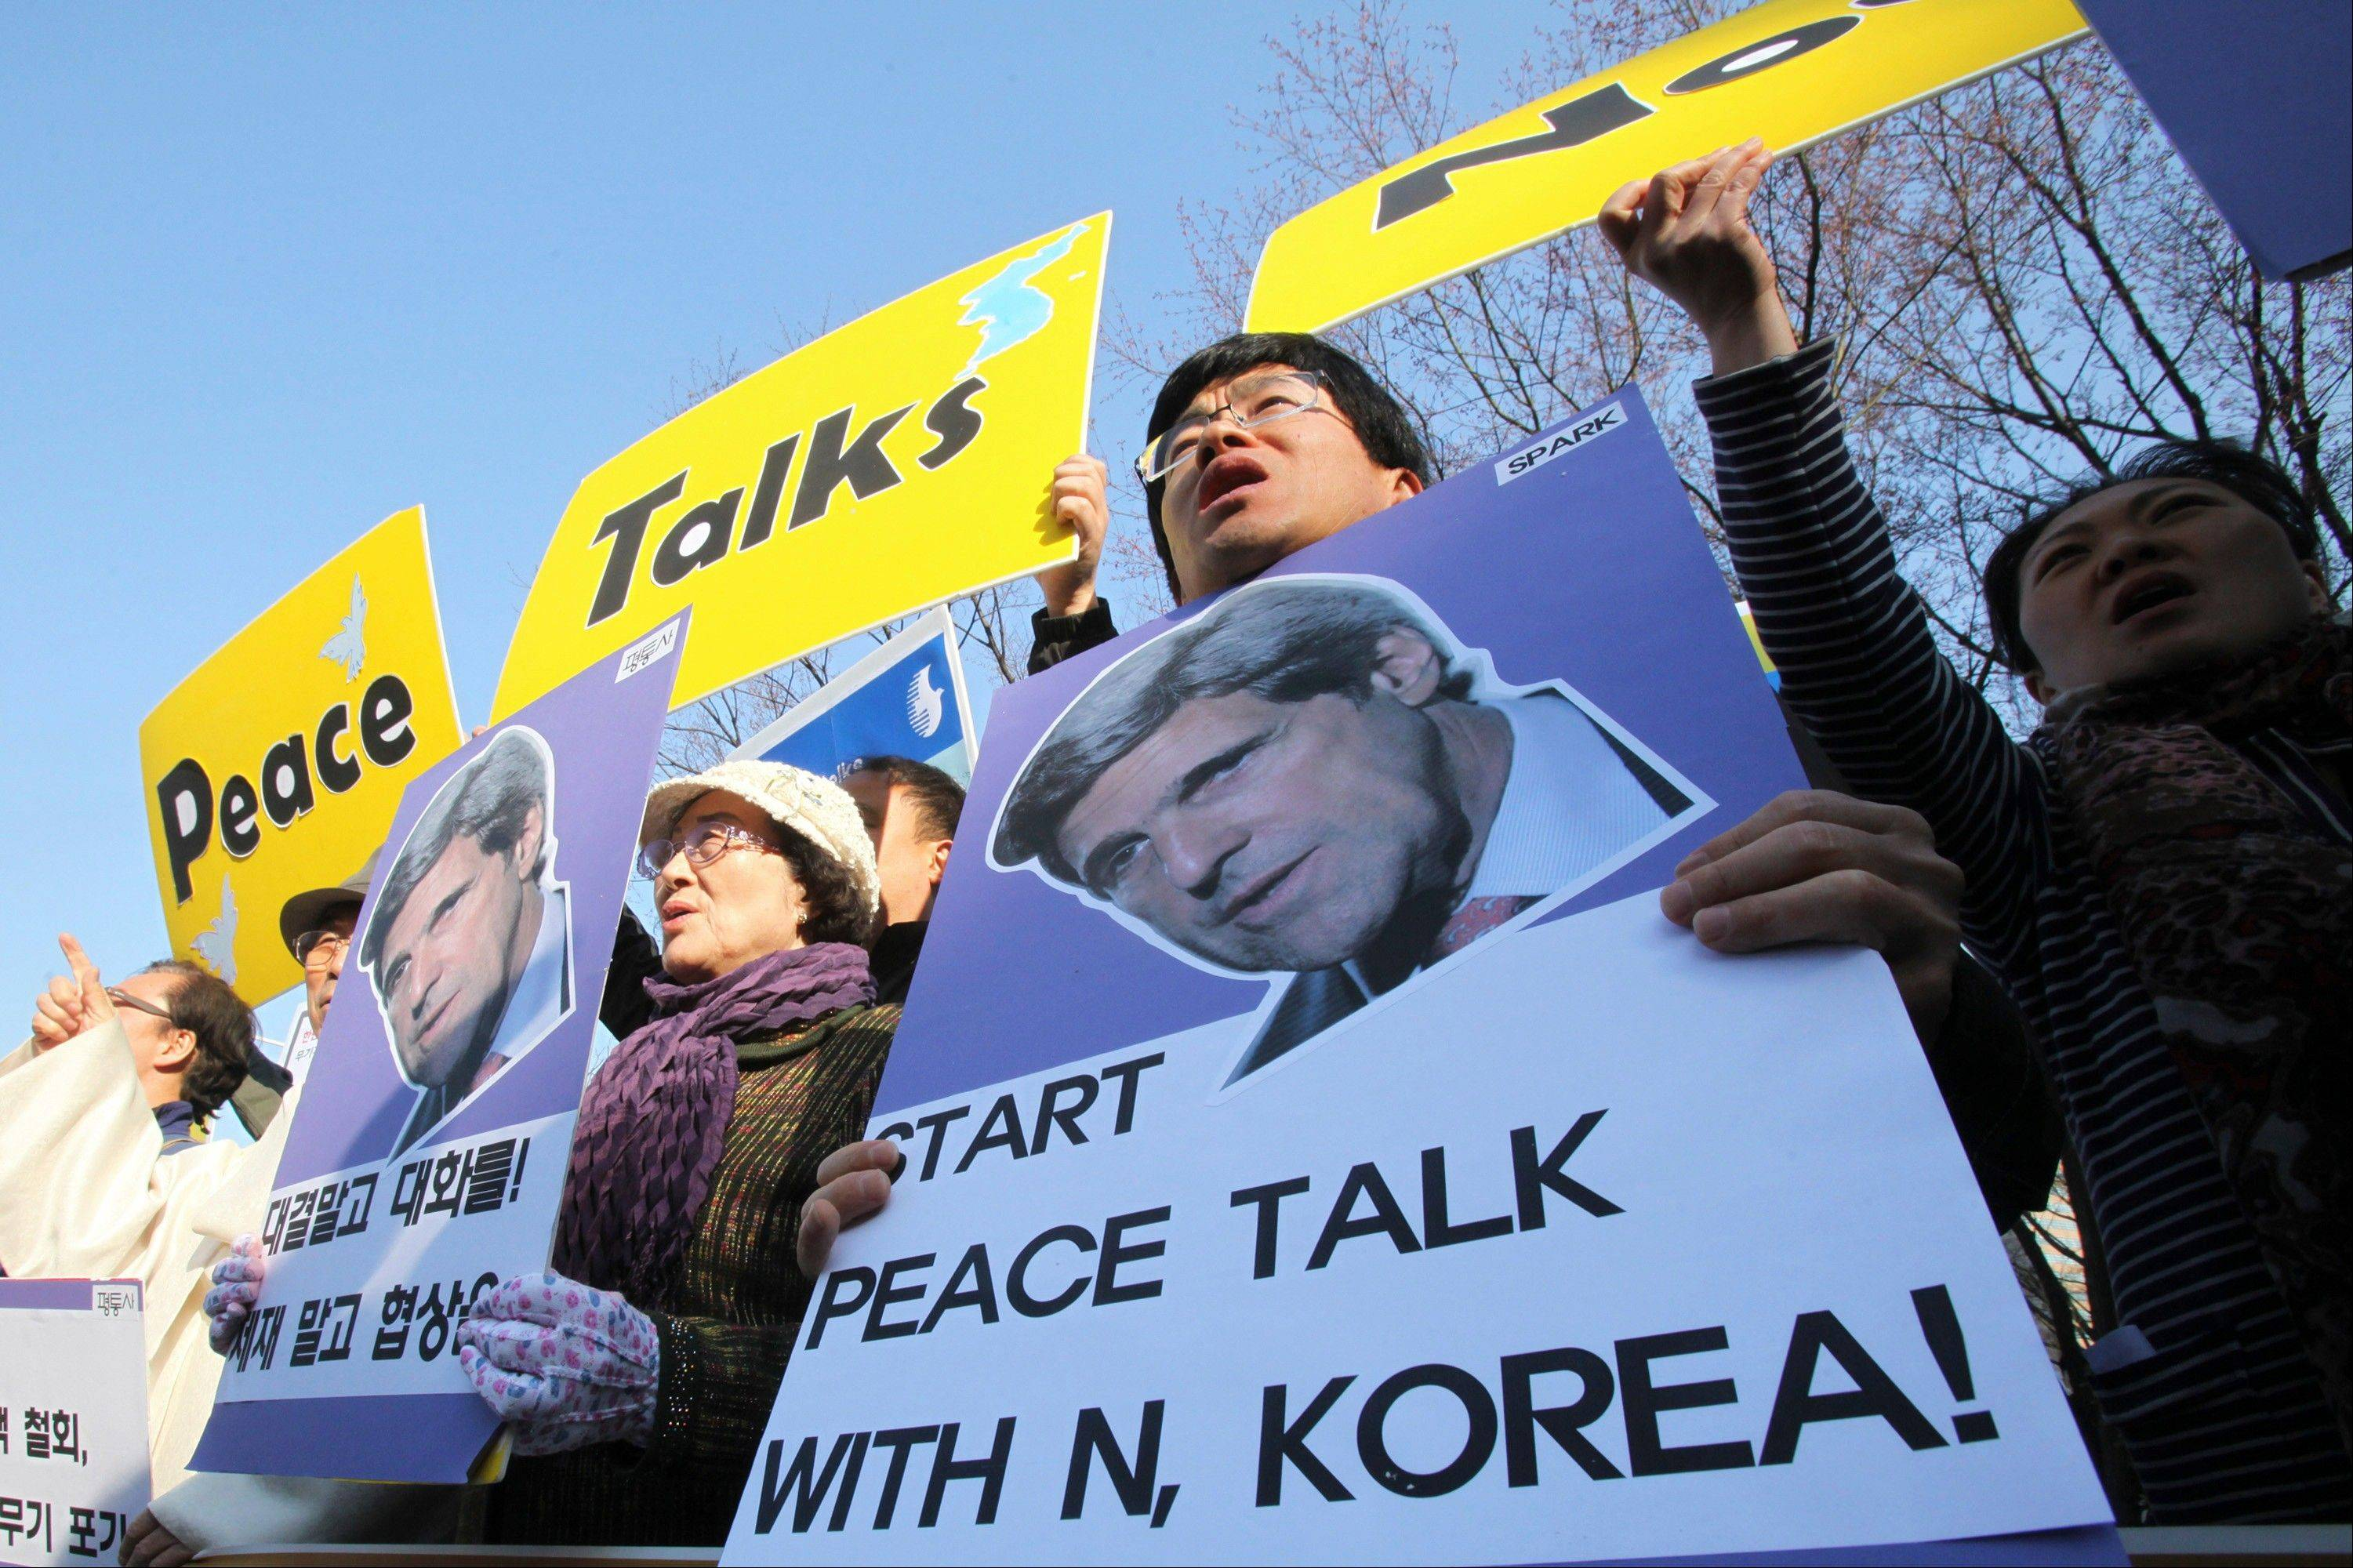 South Korean protesters hold portraits of U.S. Secretary of State John Kerry and shout slogans during a rally to denounce the military exercises and demanding Kerry to go to North Korea for peace in front of the Foreign Ministry in Seoul, South Korea, Friday, April 12, 2013. Kerry arrived in South Korea on Friday on an unusual diplomatic journey, traveling directly into a region bracing for a possible North Korean missile test and risking that his presence alone could spur Pyongyang into another headline-seeking provocation.